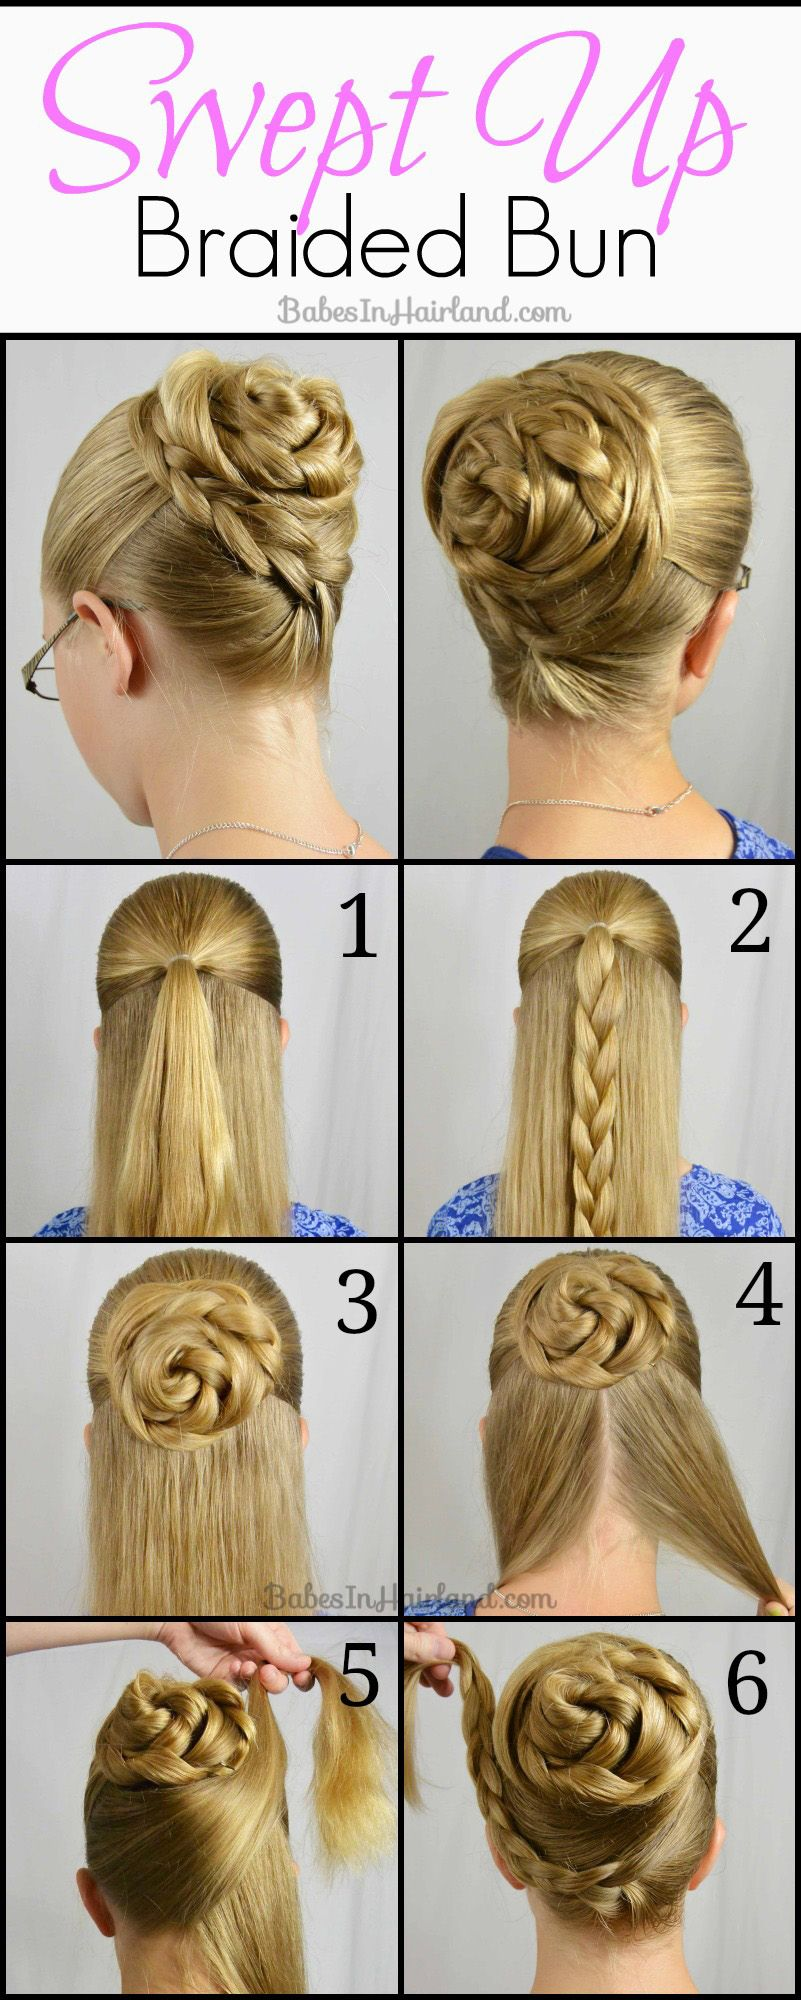 Communication on this topic: Sophisticated DIY Braid Embellished Updo, sophisticated-diy-braid-embellished-updo/